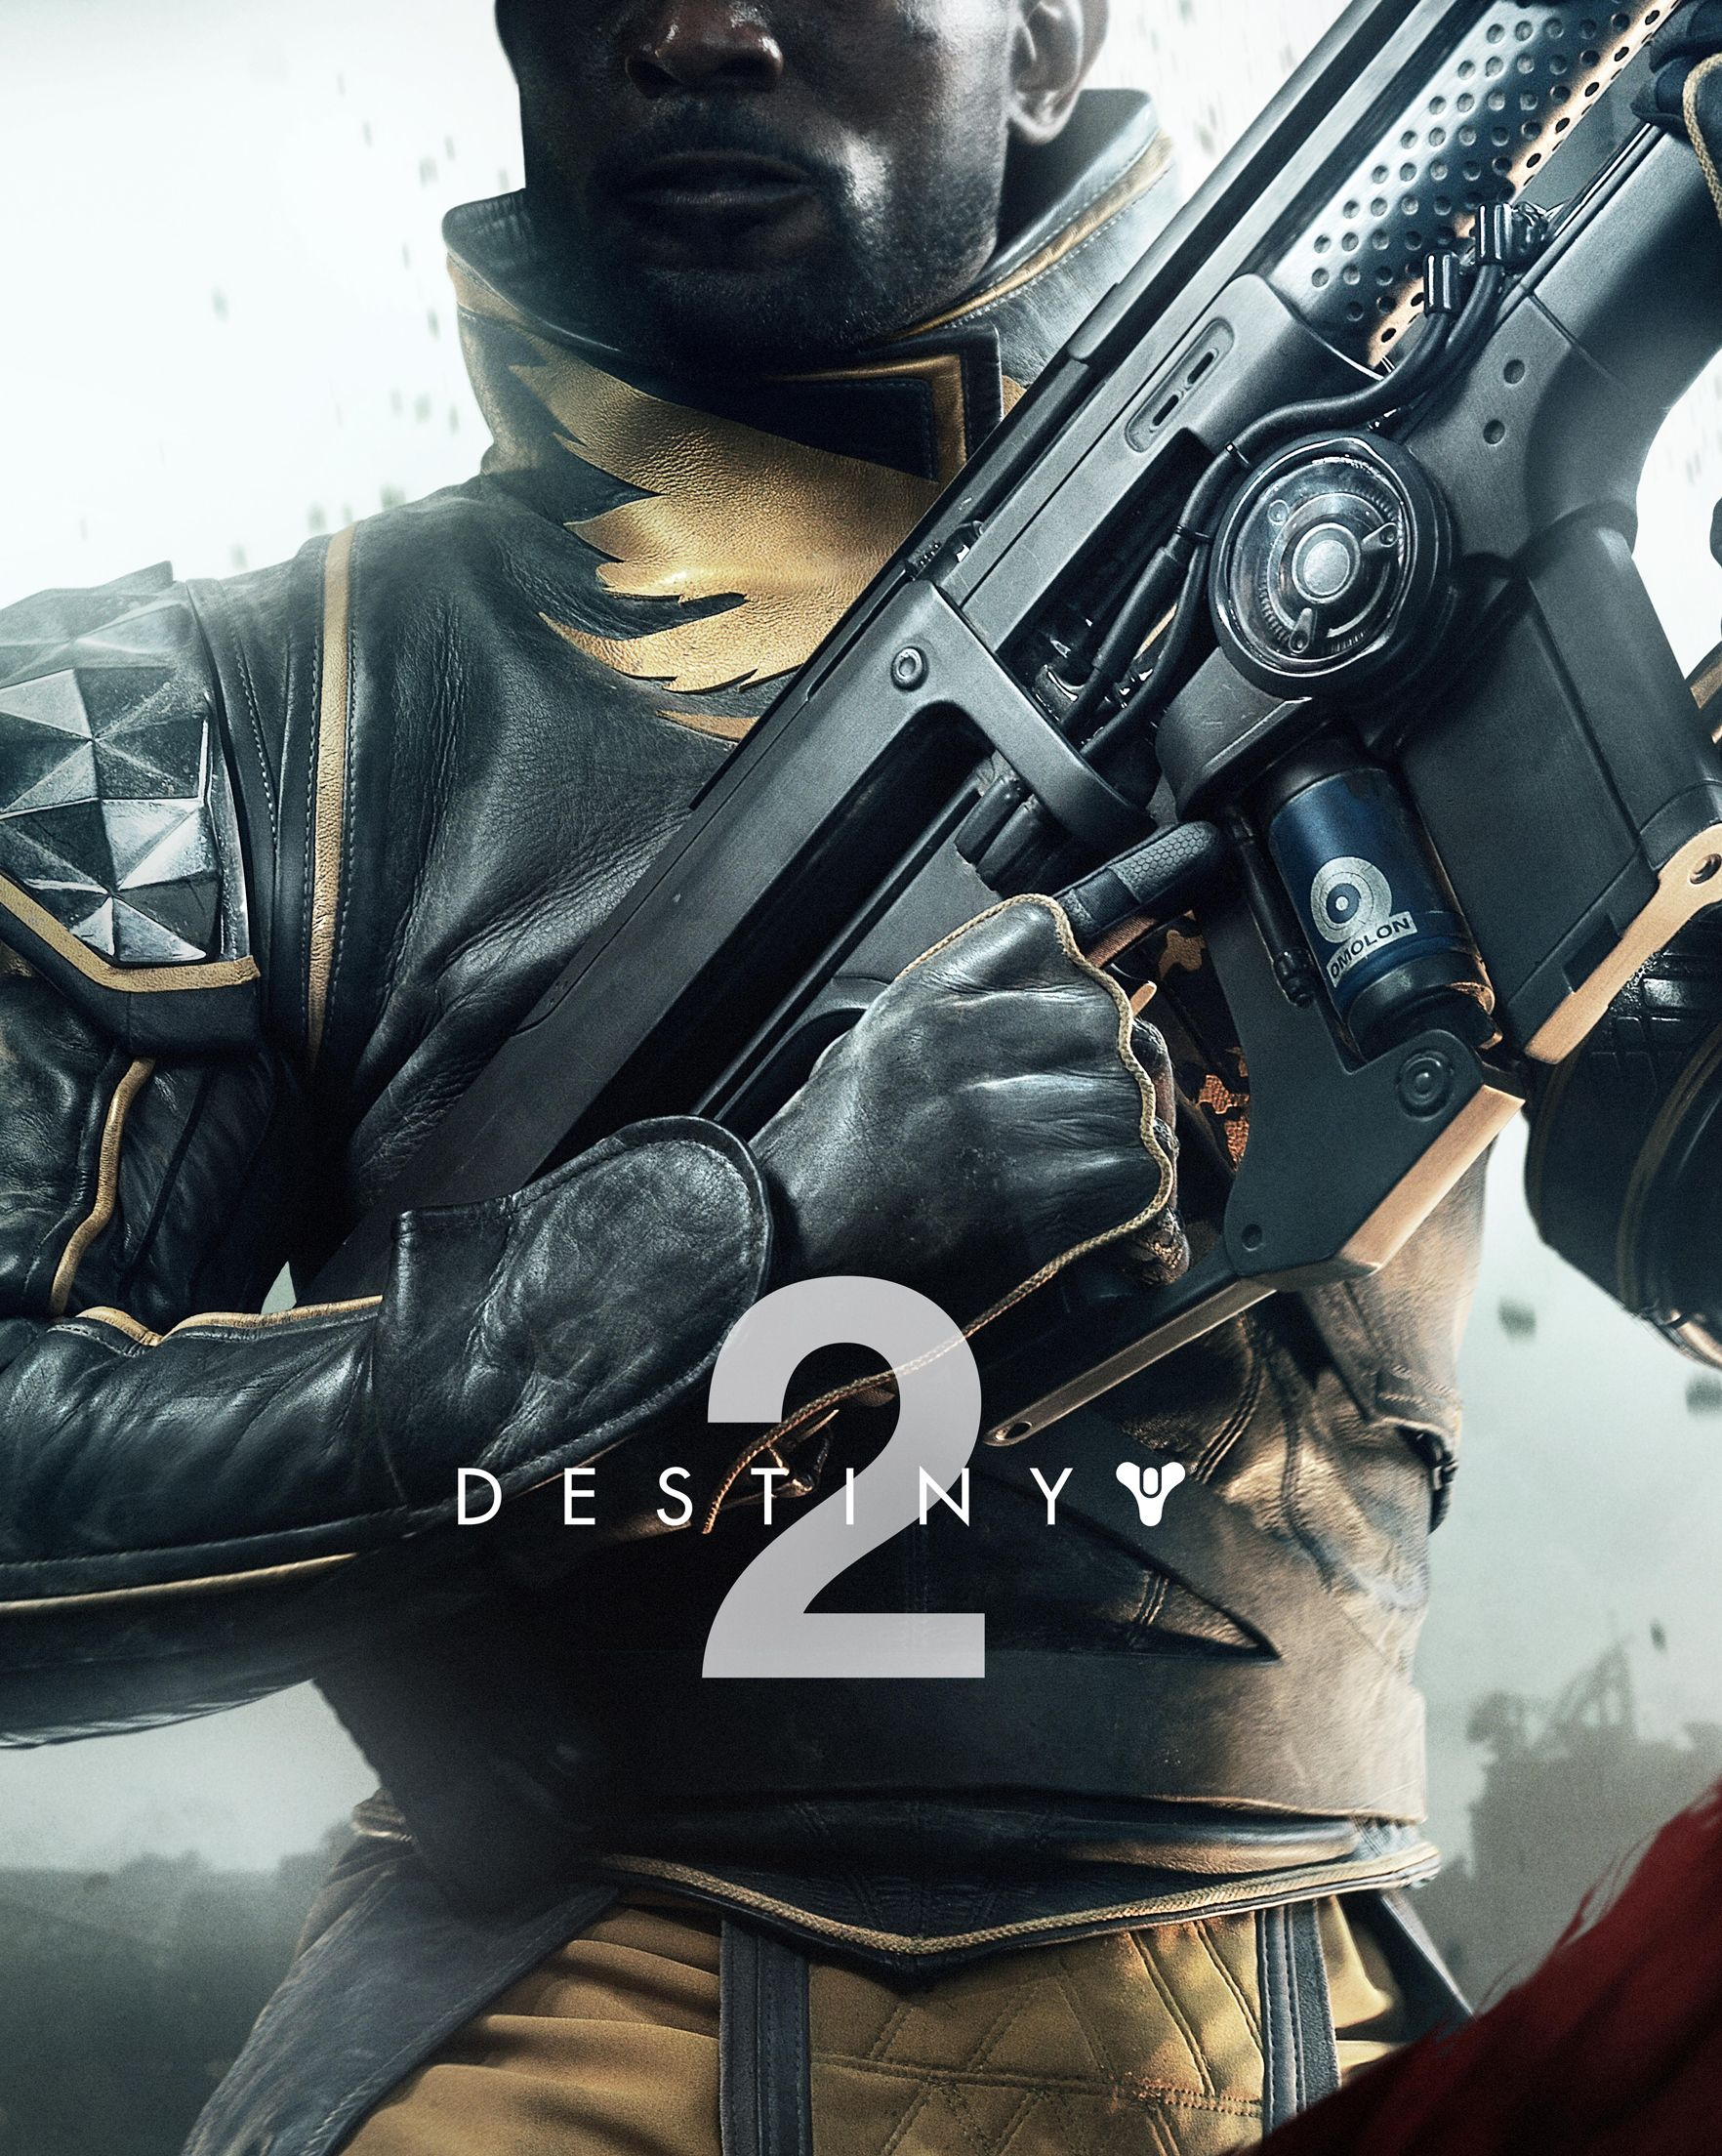 Awesome IPhone\/Android Destiny Wallpaper : DestinyTheGame